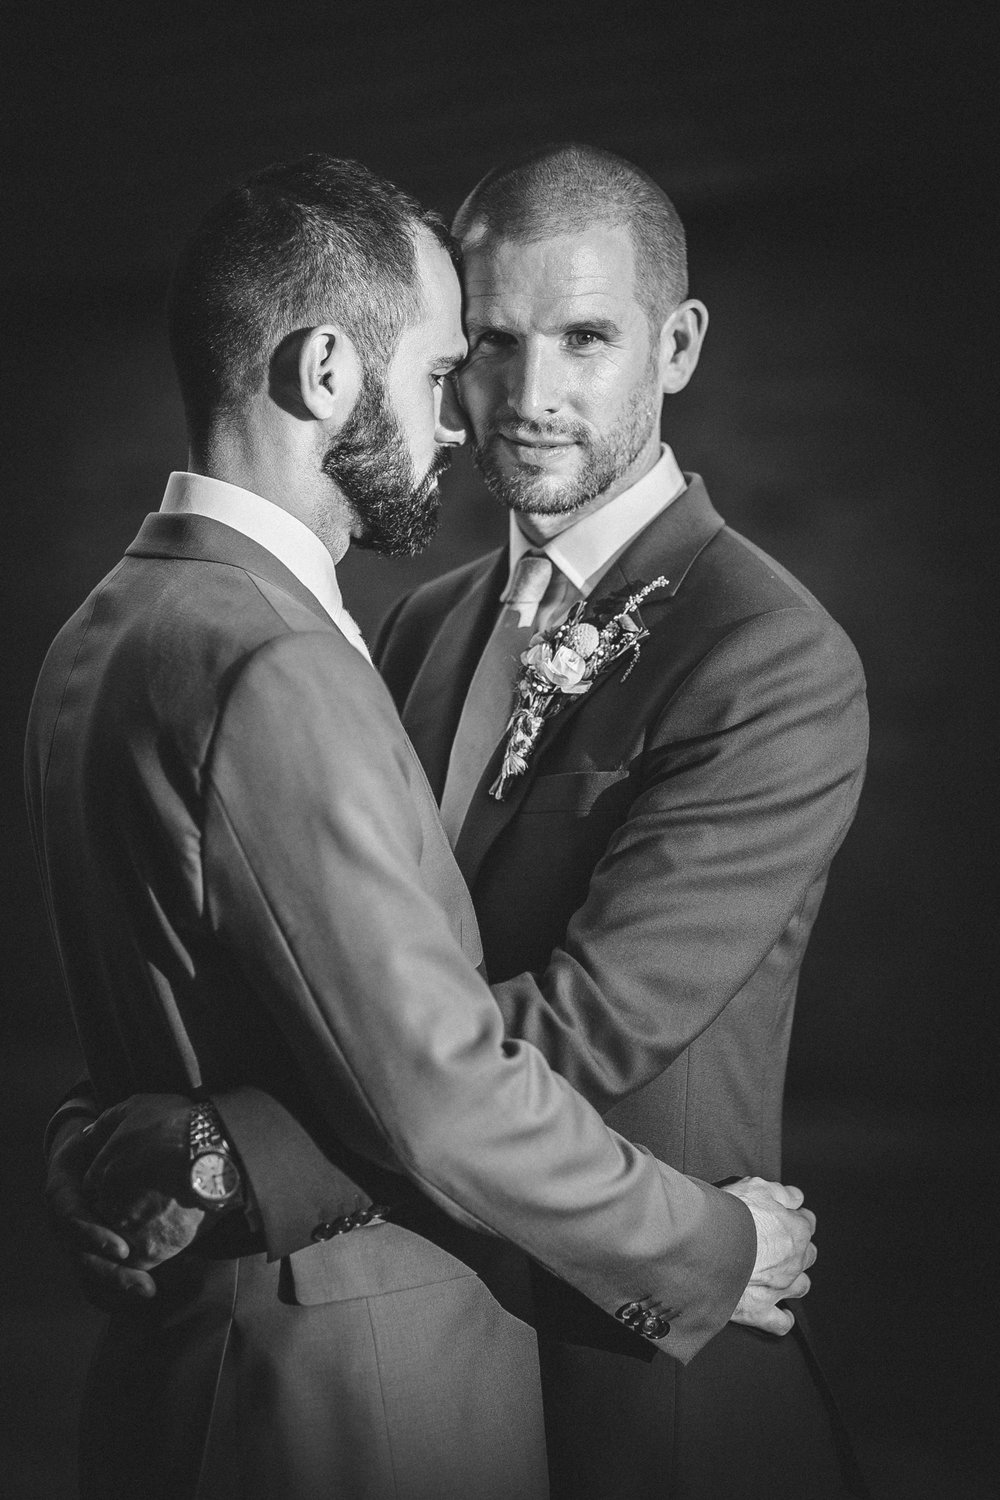 Gay weddings Ireland Millhouse-199.jpg